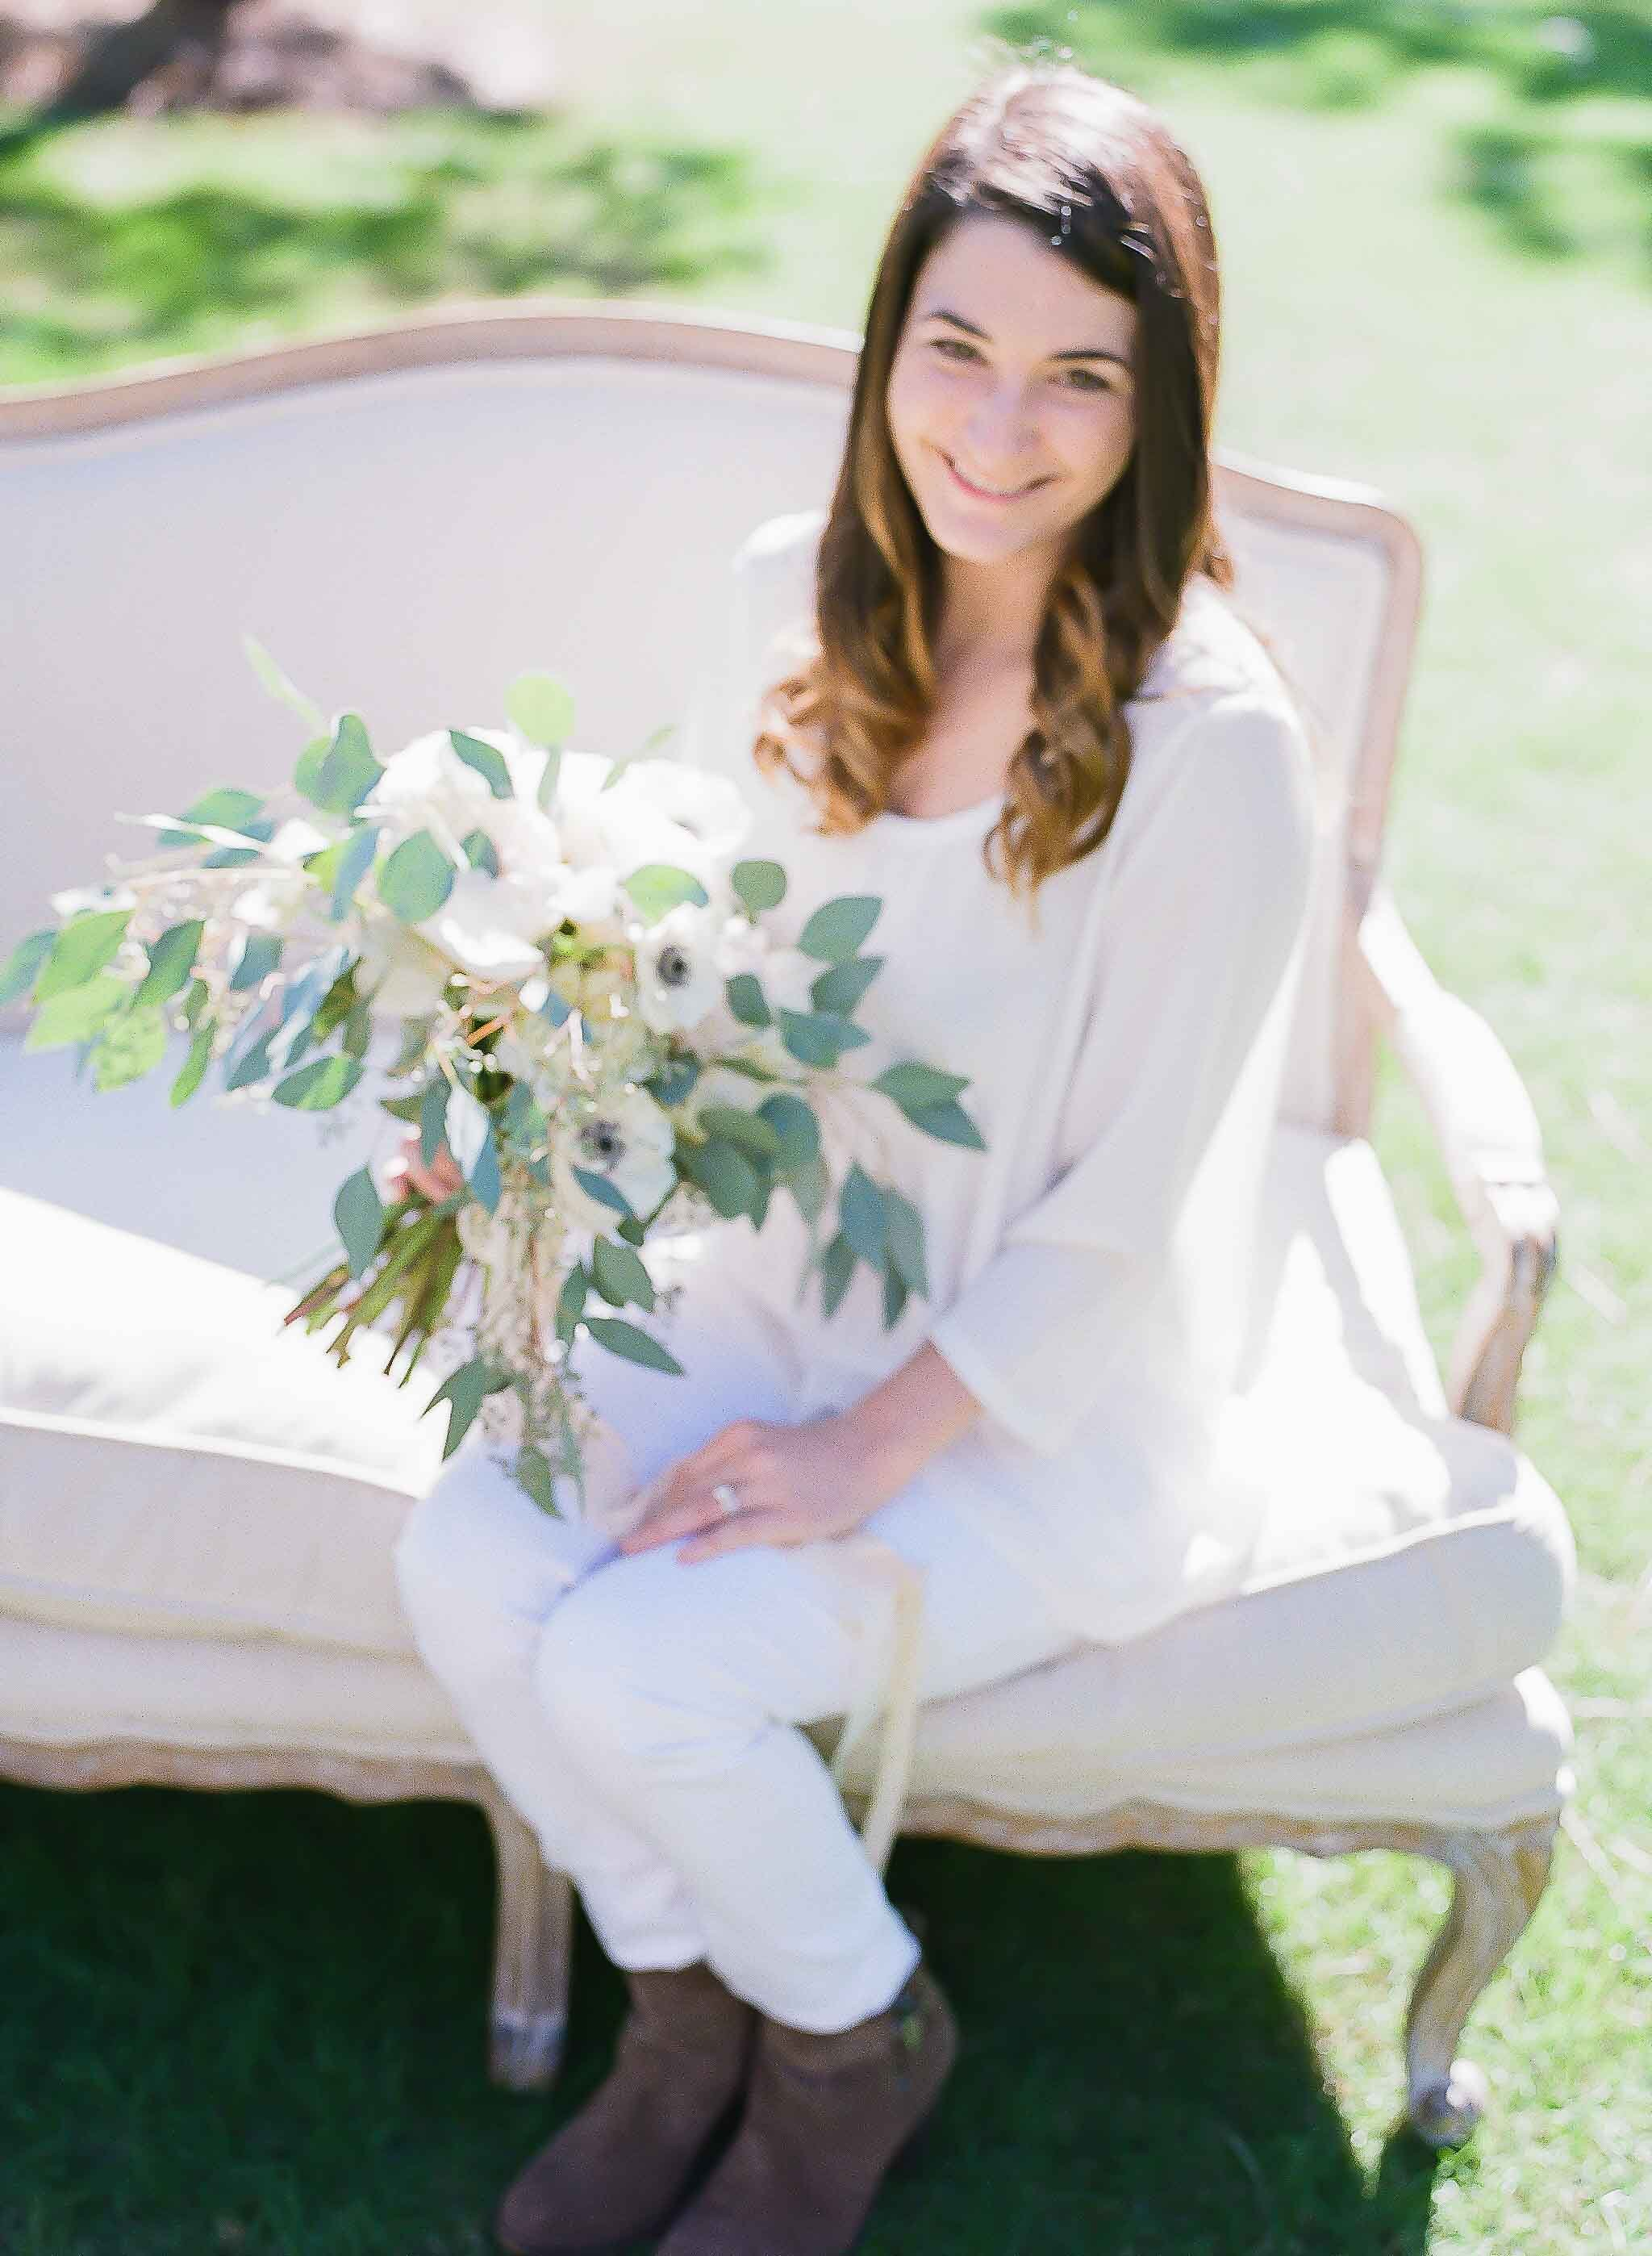 Victoria Austin Designs Branding by Kaylie Poplin Photography, Wedding design styling florals planning fairhope al, alabama weddings